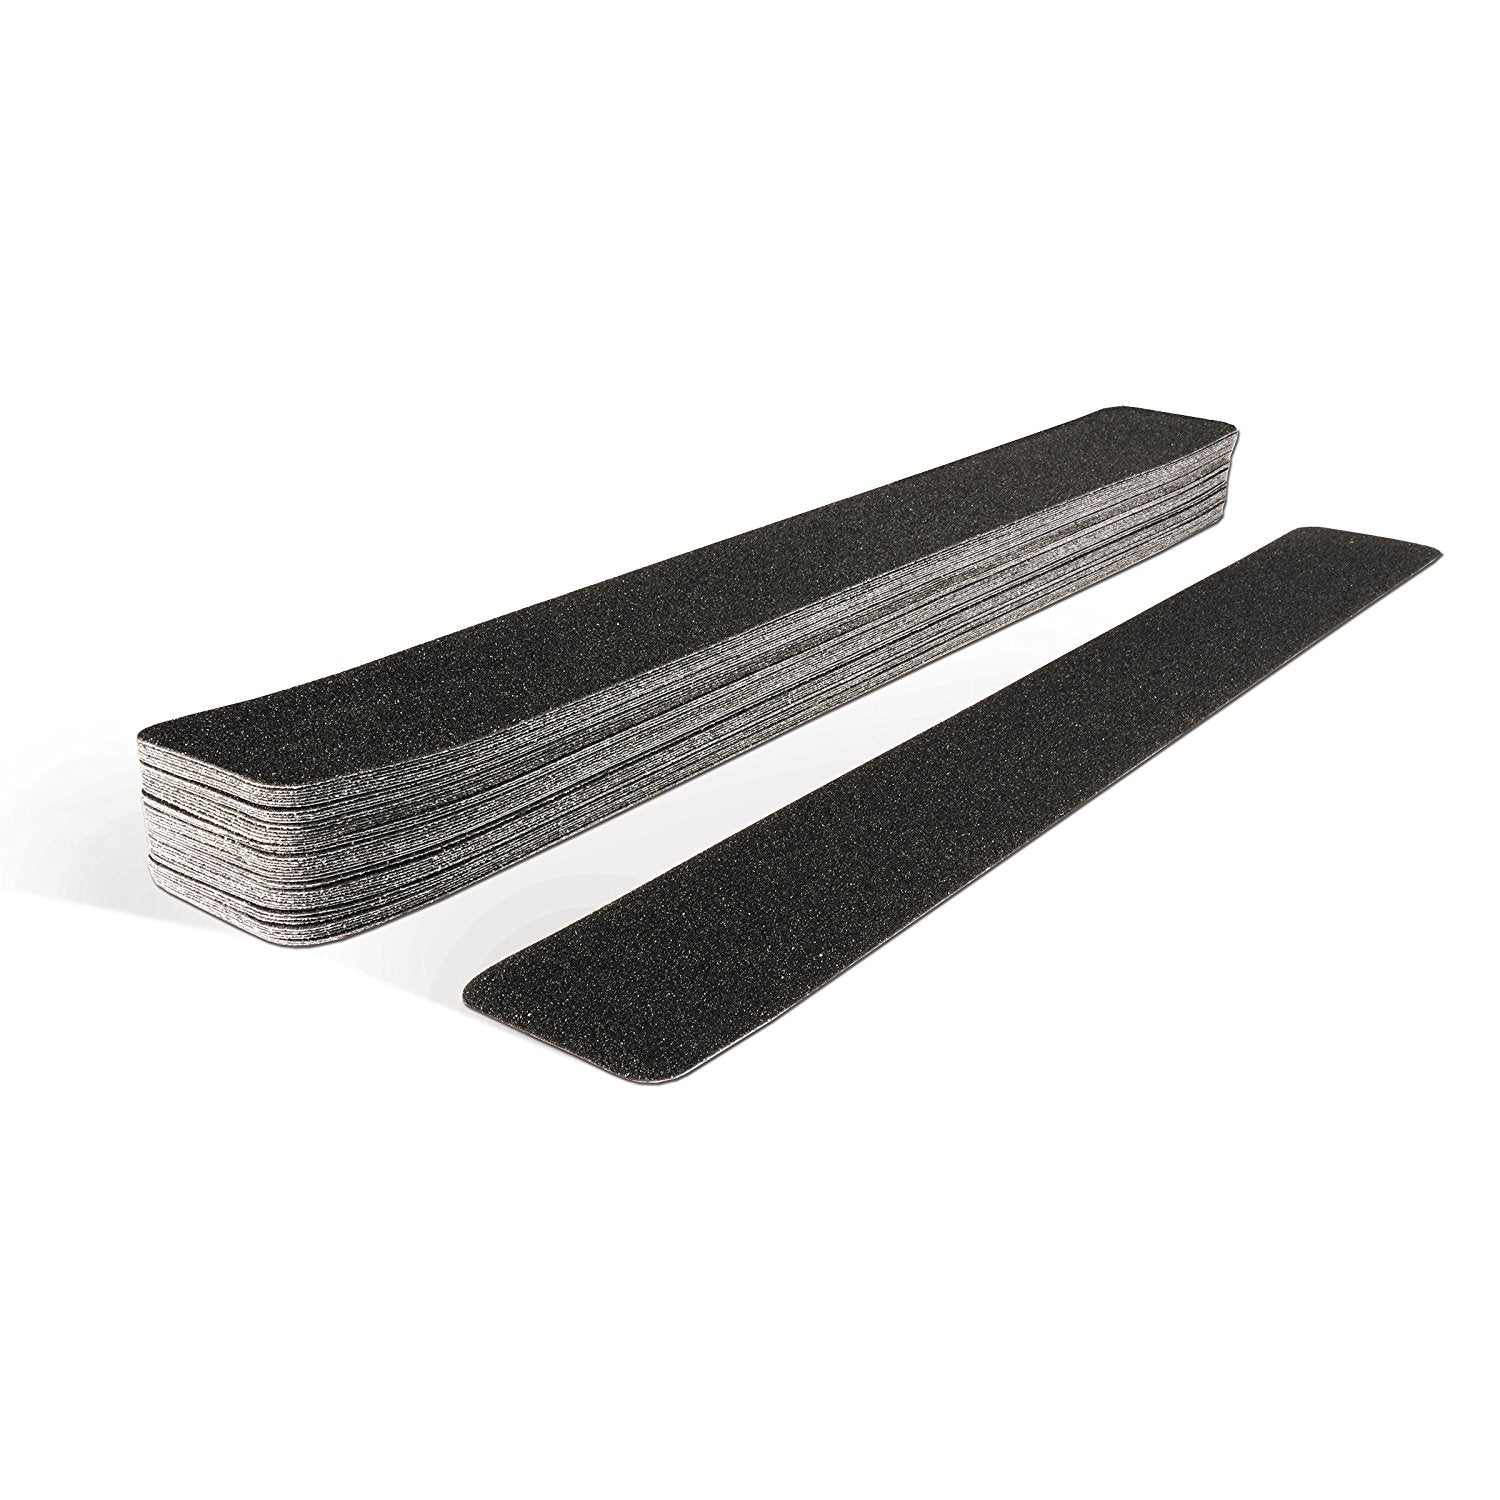 "3"" X 24"" Gator Grip Non Slip 60 Grit Anti-Slip Treads - Pkg. of 50"